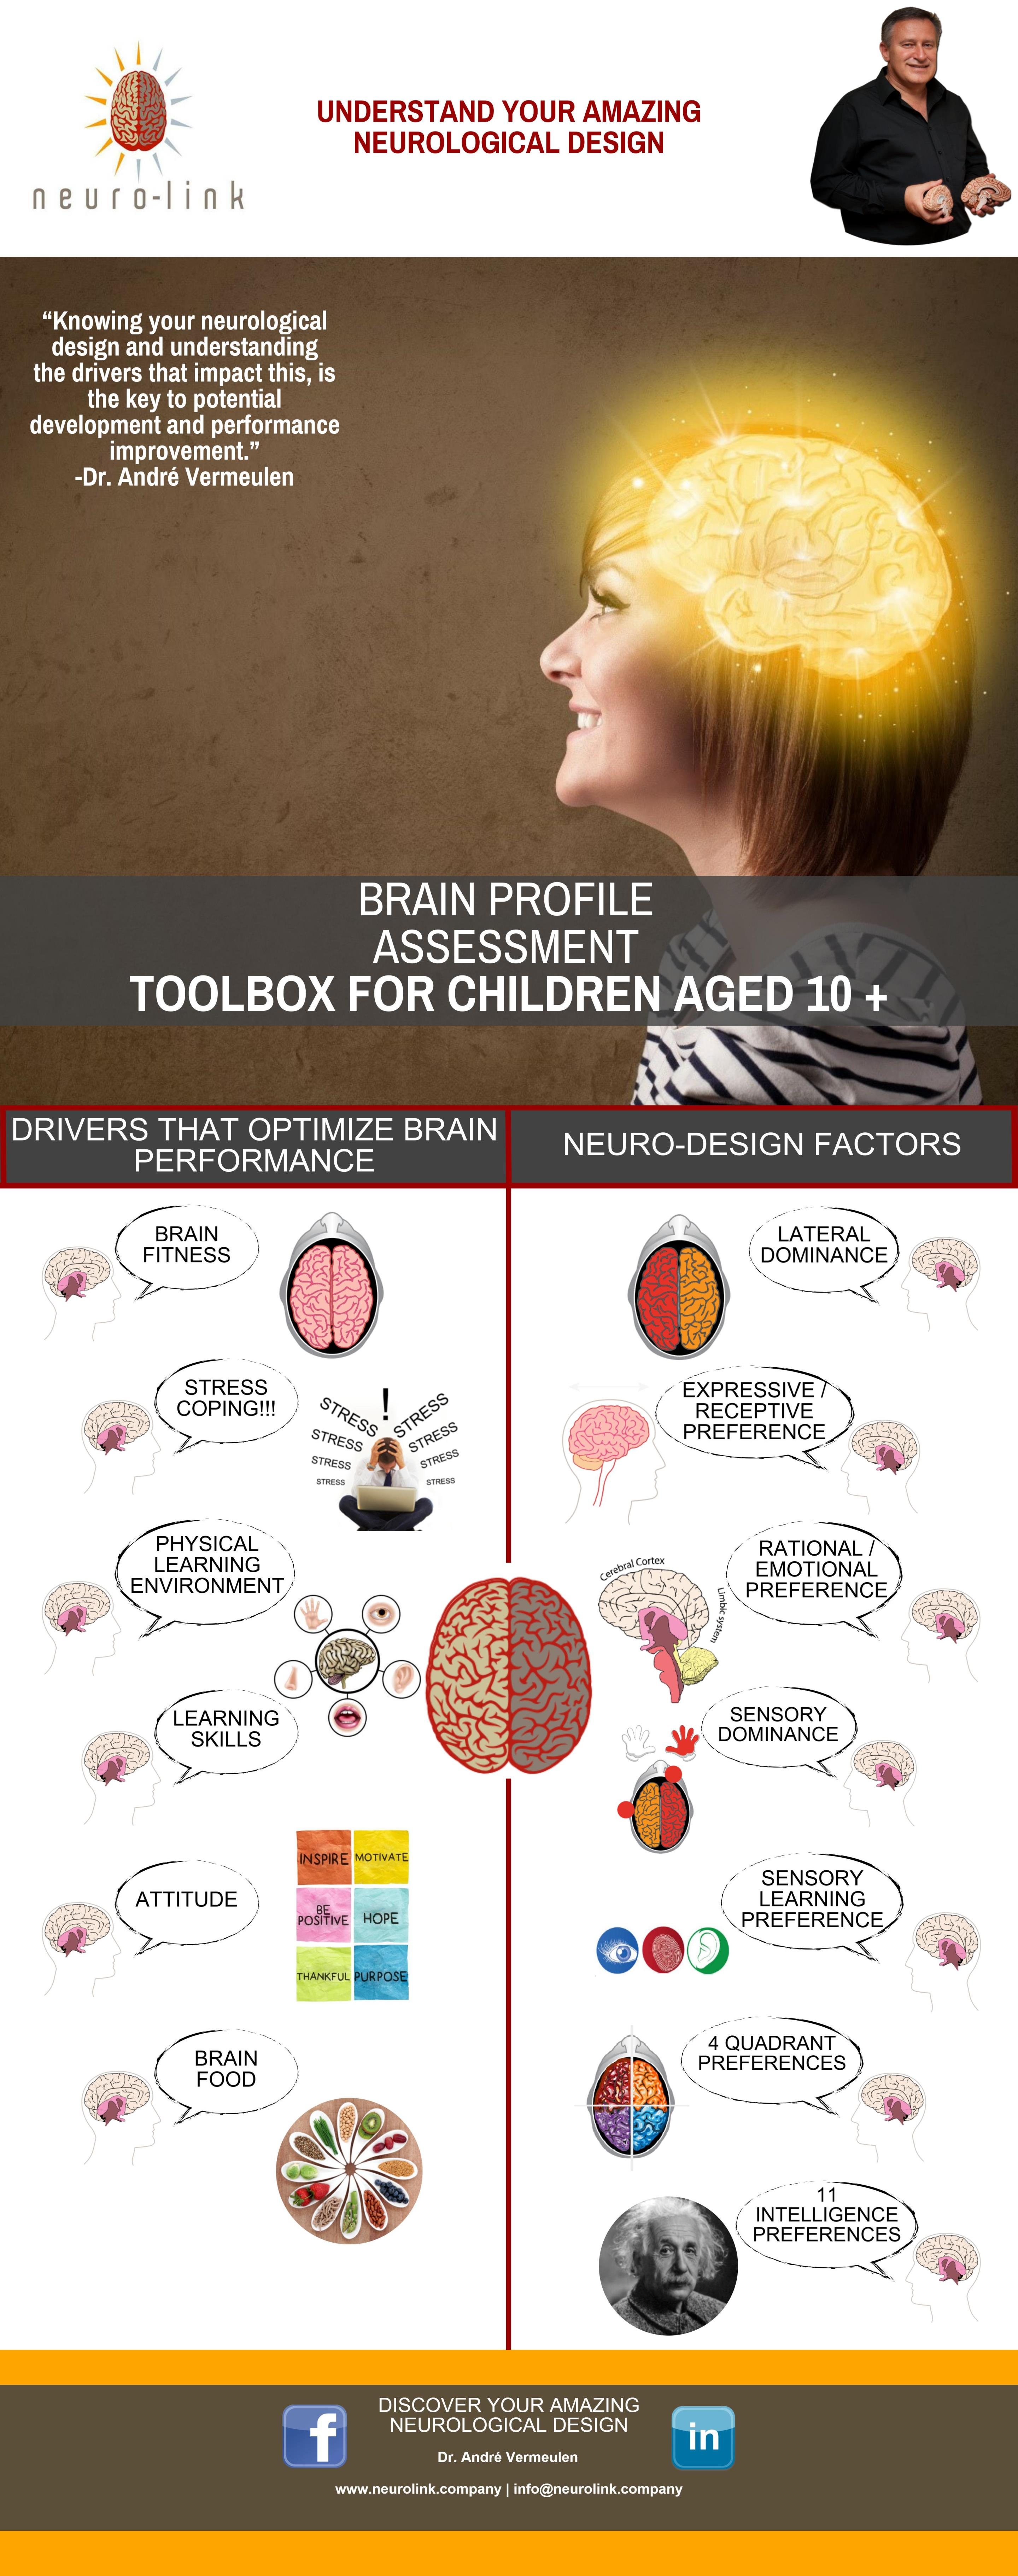 your-amazing-neurological-design-toolbox-for-children-10